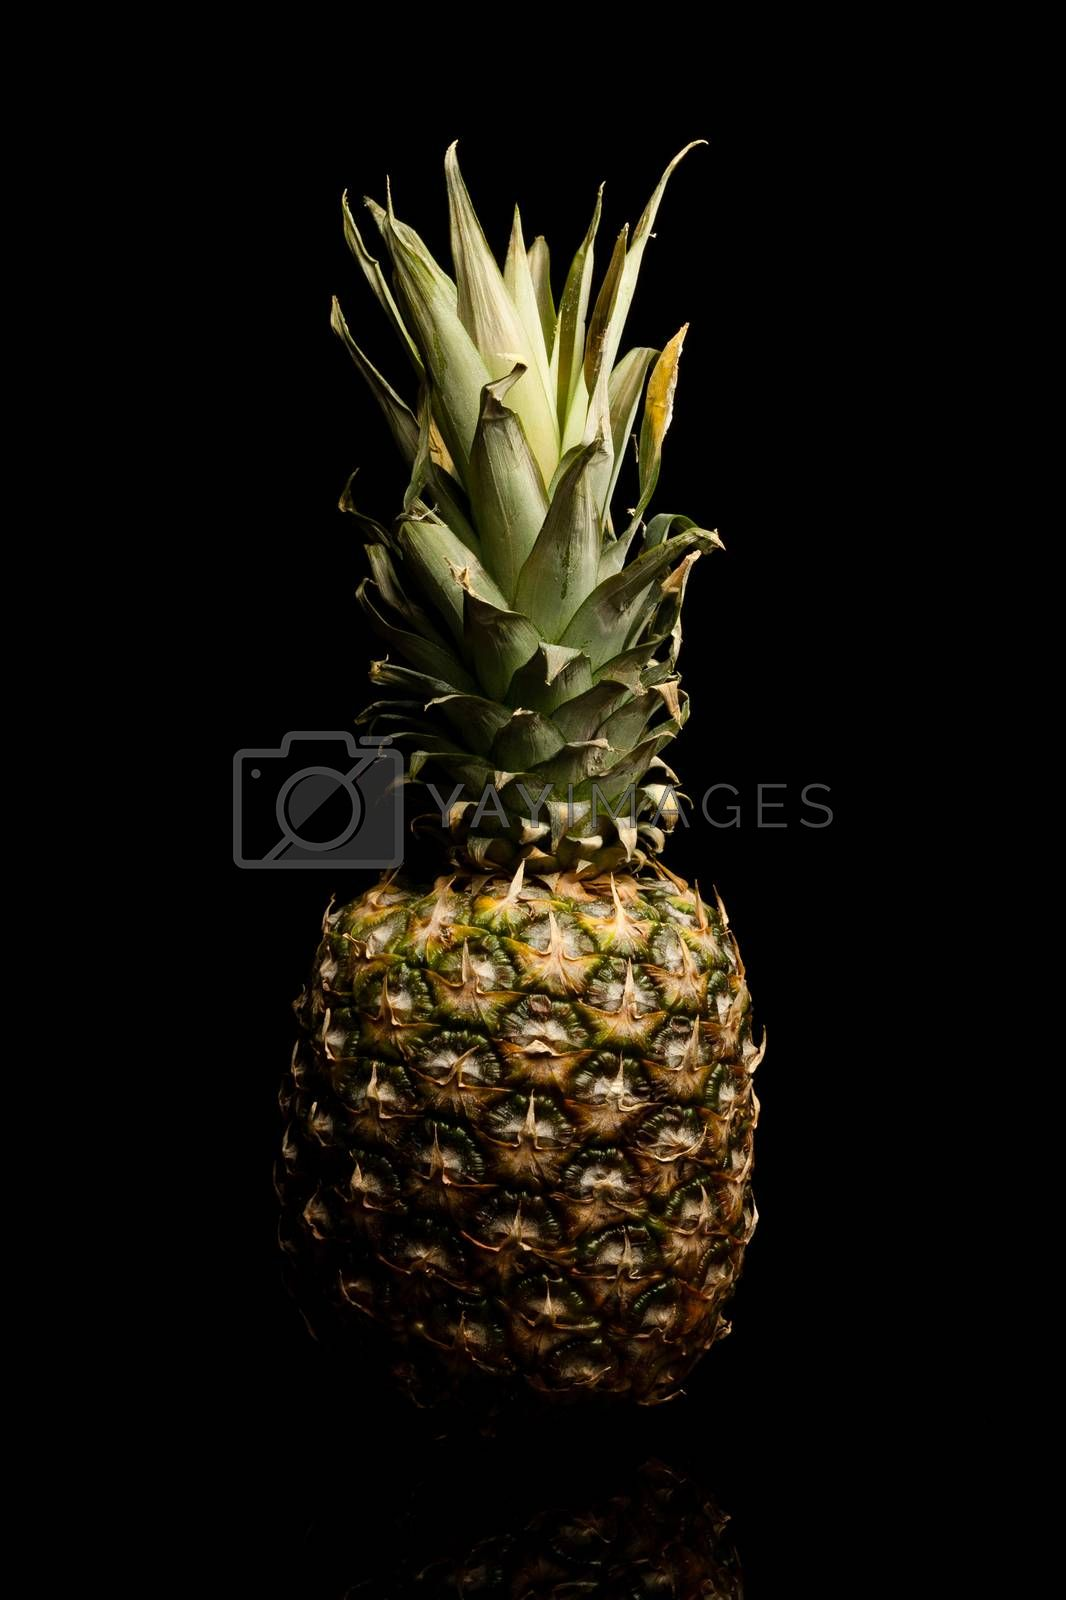 Royalty free image of Ananas by furo_felix